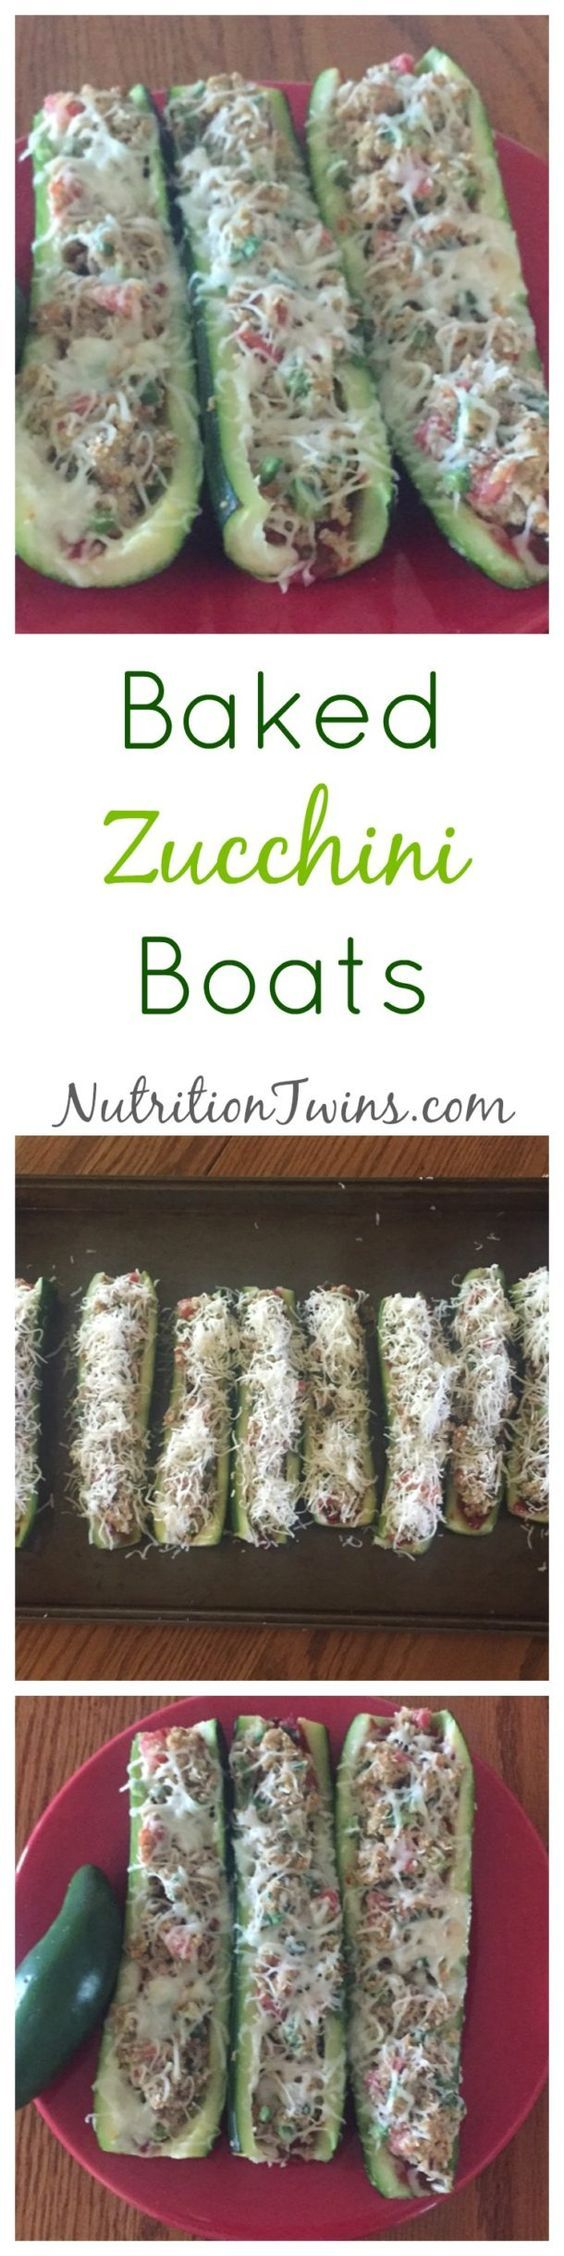 Baked_Zucchini_Boats_Collage